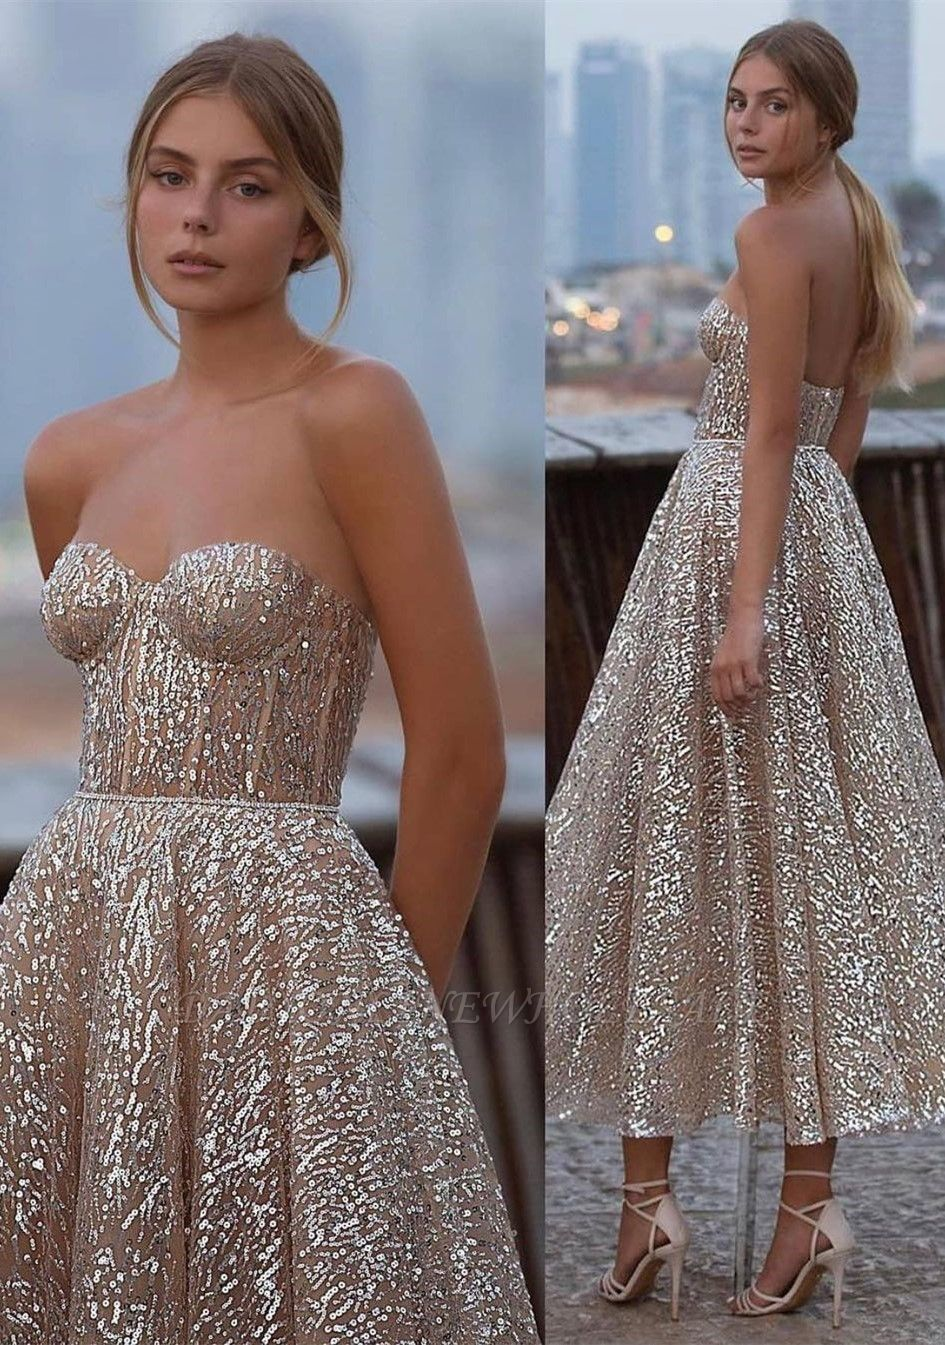 Glliter-Seeveless-Prom-Dress-Evening-Backless-Cocktail-Party-Dress